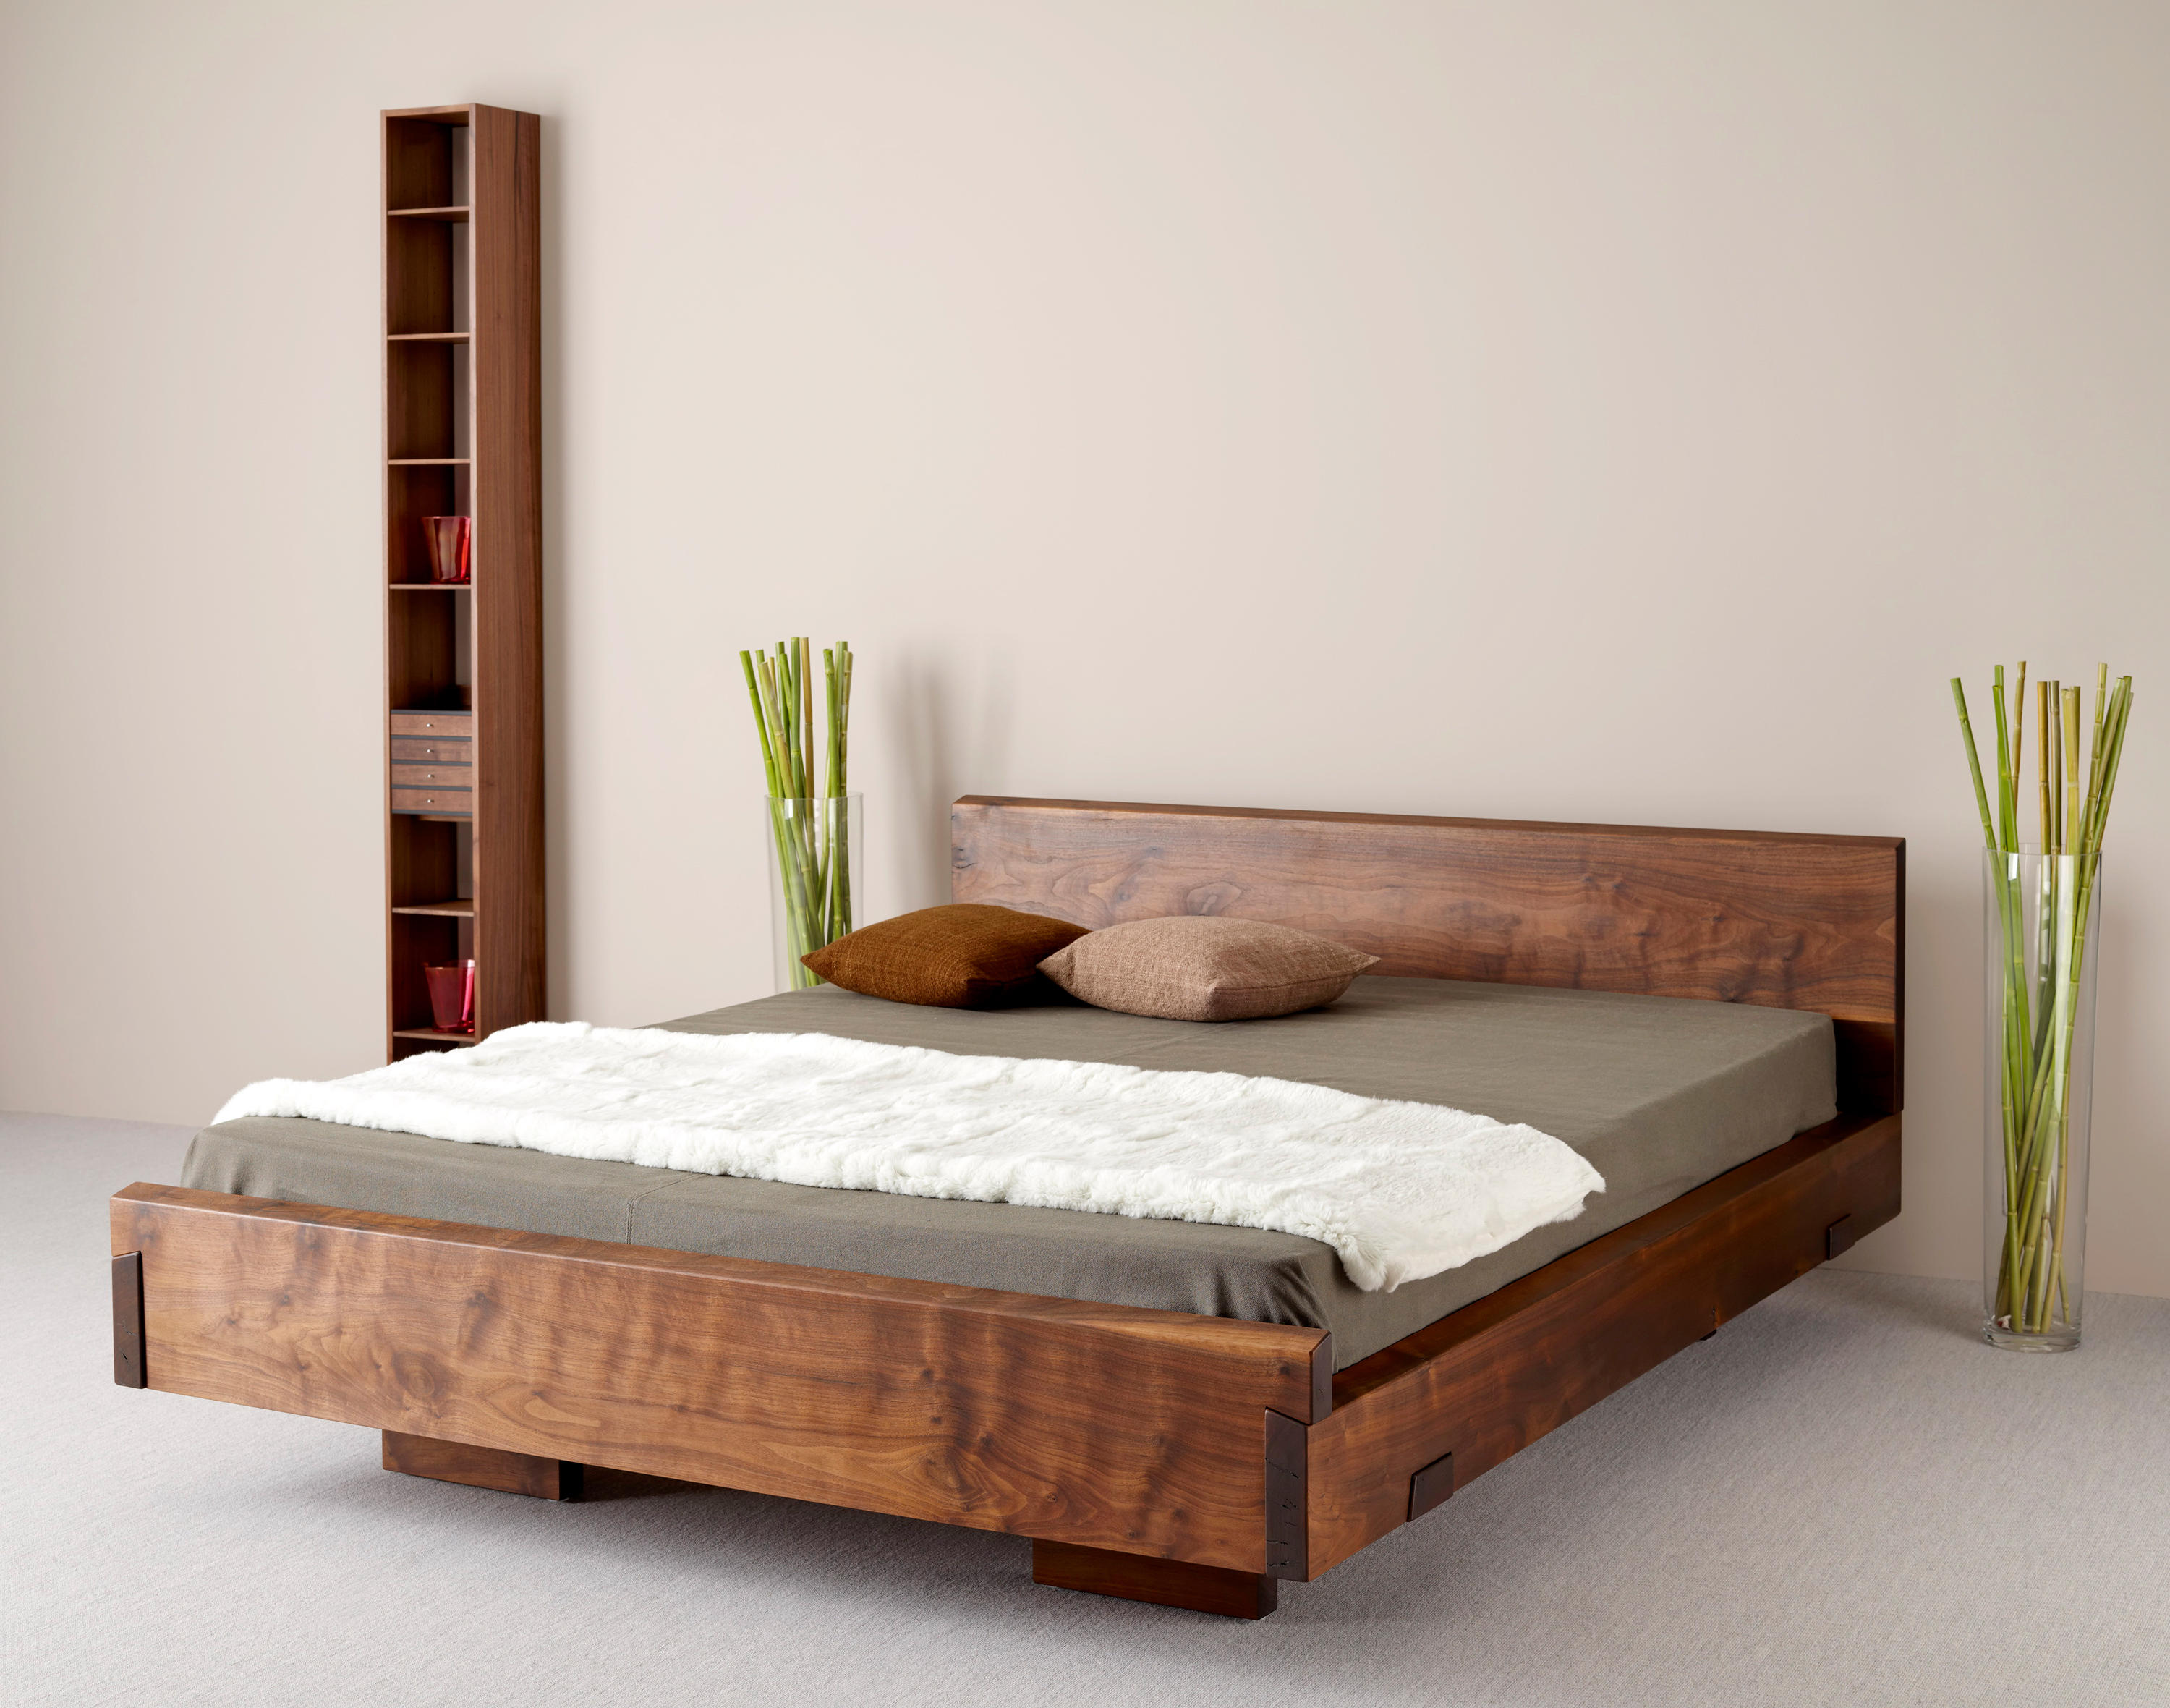 Ign timber night double beds from ign design architonic - Designs of double bed ...